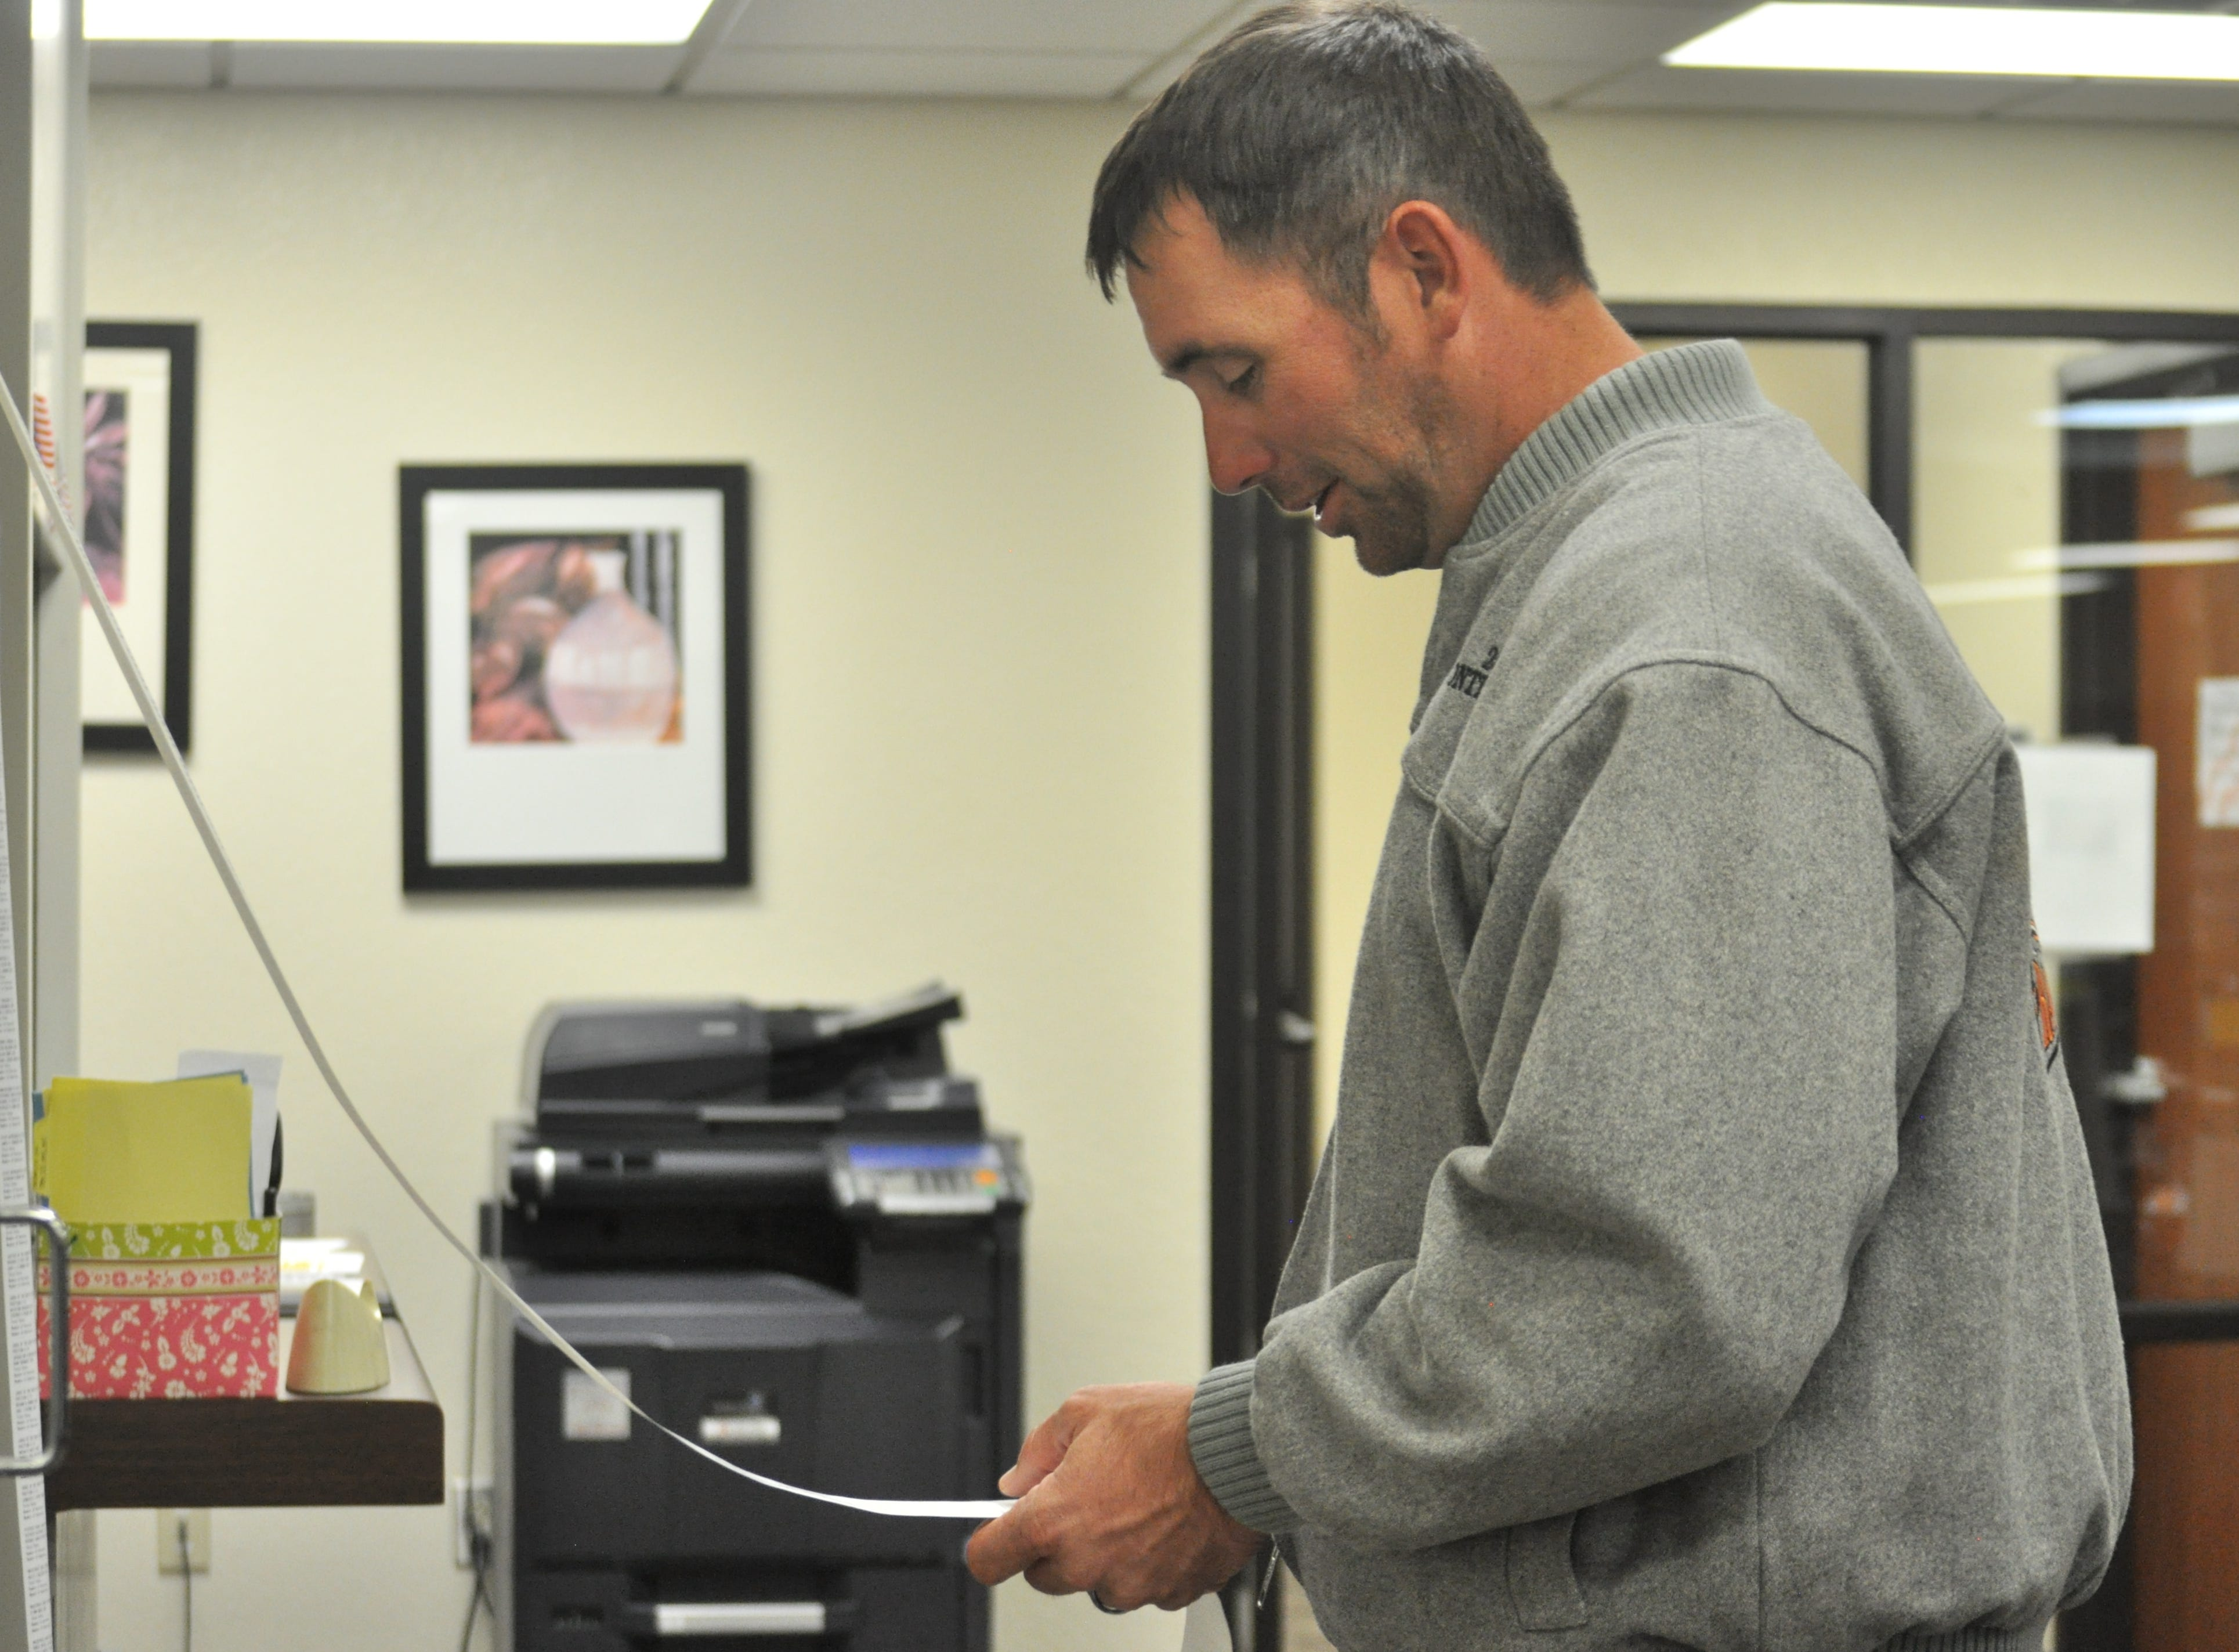 Steven McCutcheon review returns Oct. 6 at the Eddy County Clerk's Office.